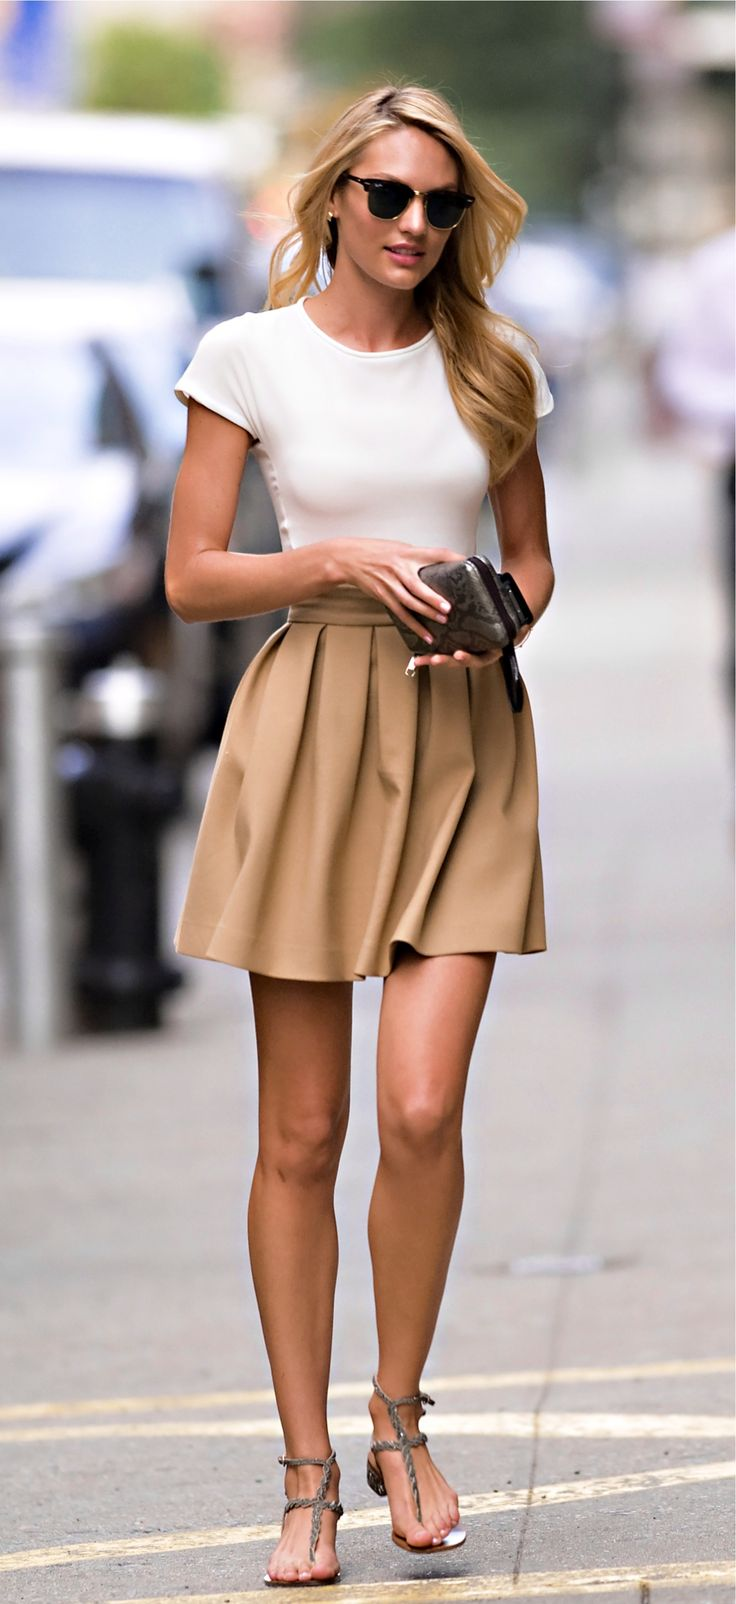 Candice swanepoel style. Ray ban , classic camel skirt